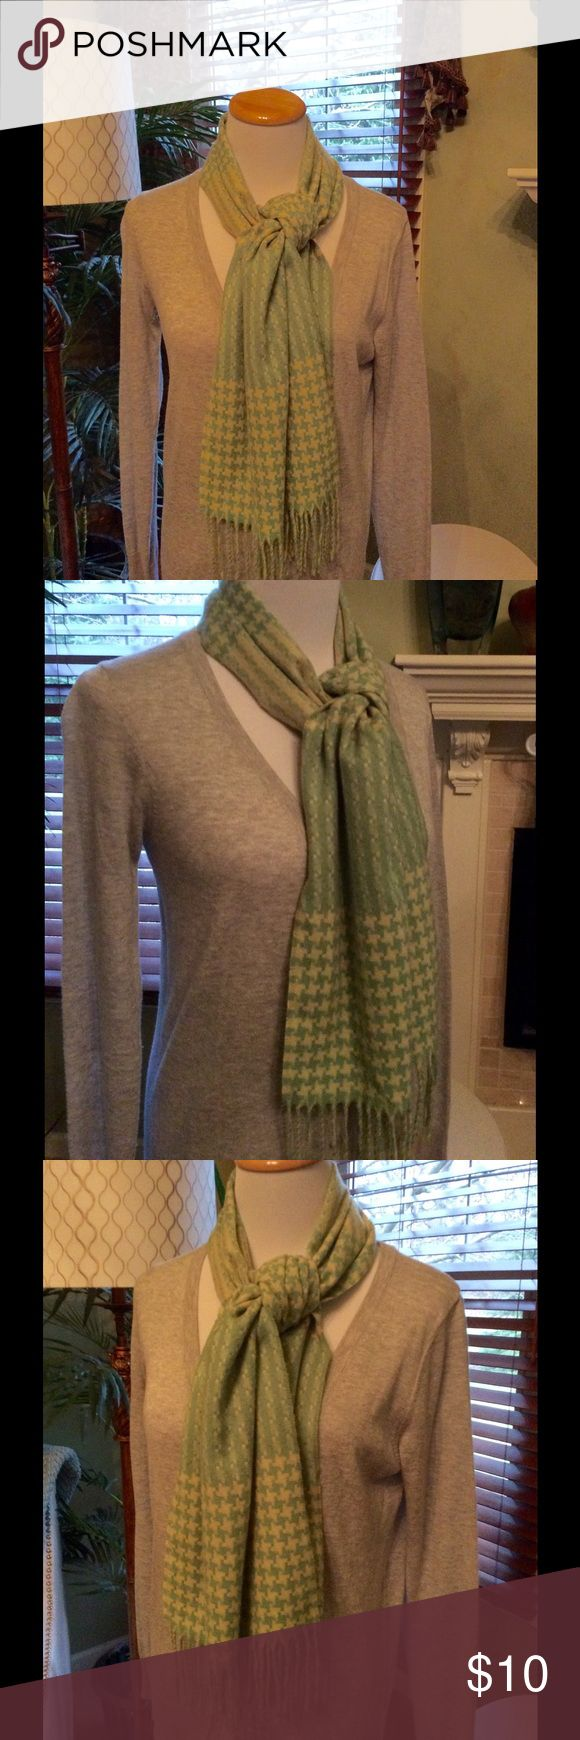 Houndstooth Scarf Updated twist on a classic deign. Bright yellow-green and yellow houndstooth scarf. 100% acrylic. Very soft. EUC ,worn once,like new Accessories Scarves & Wraps